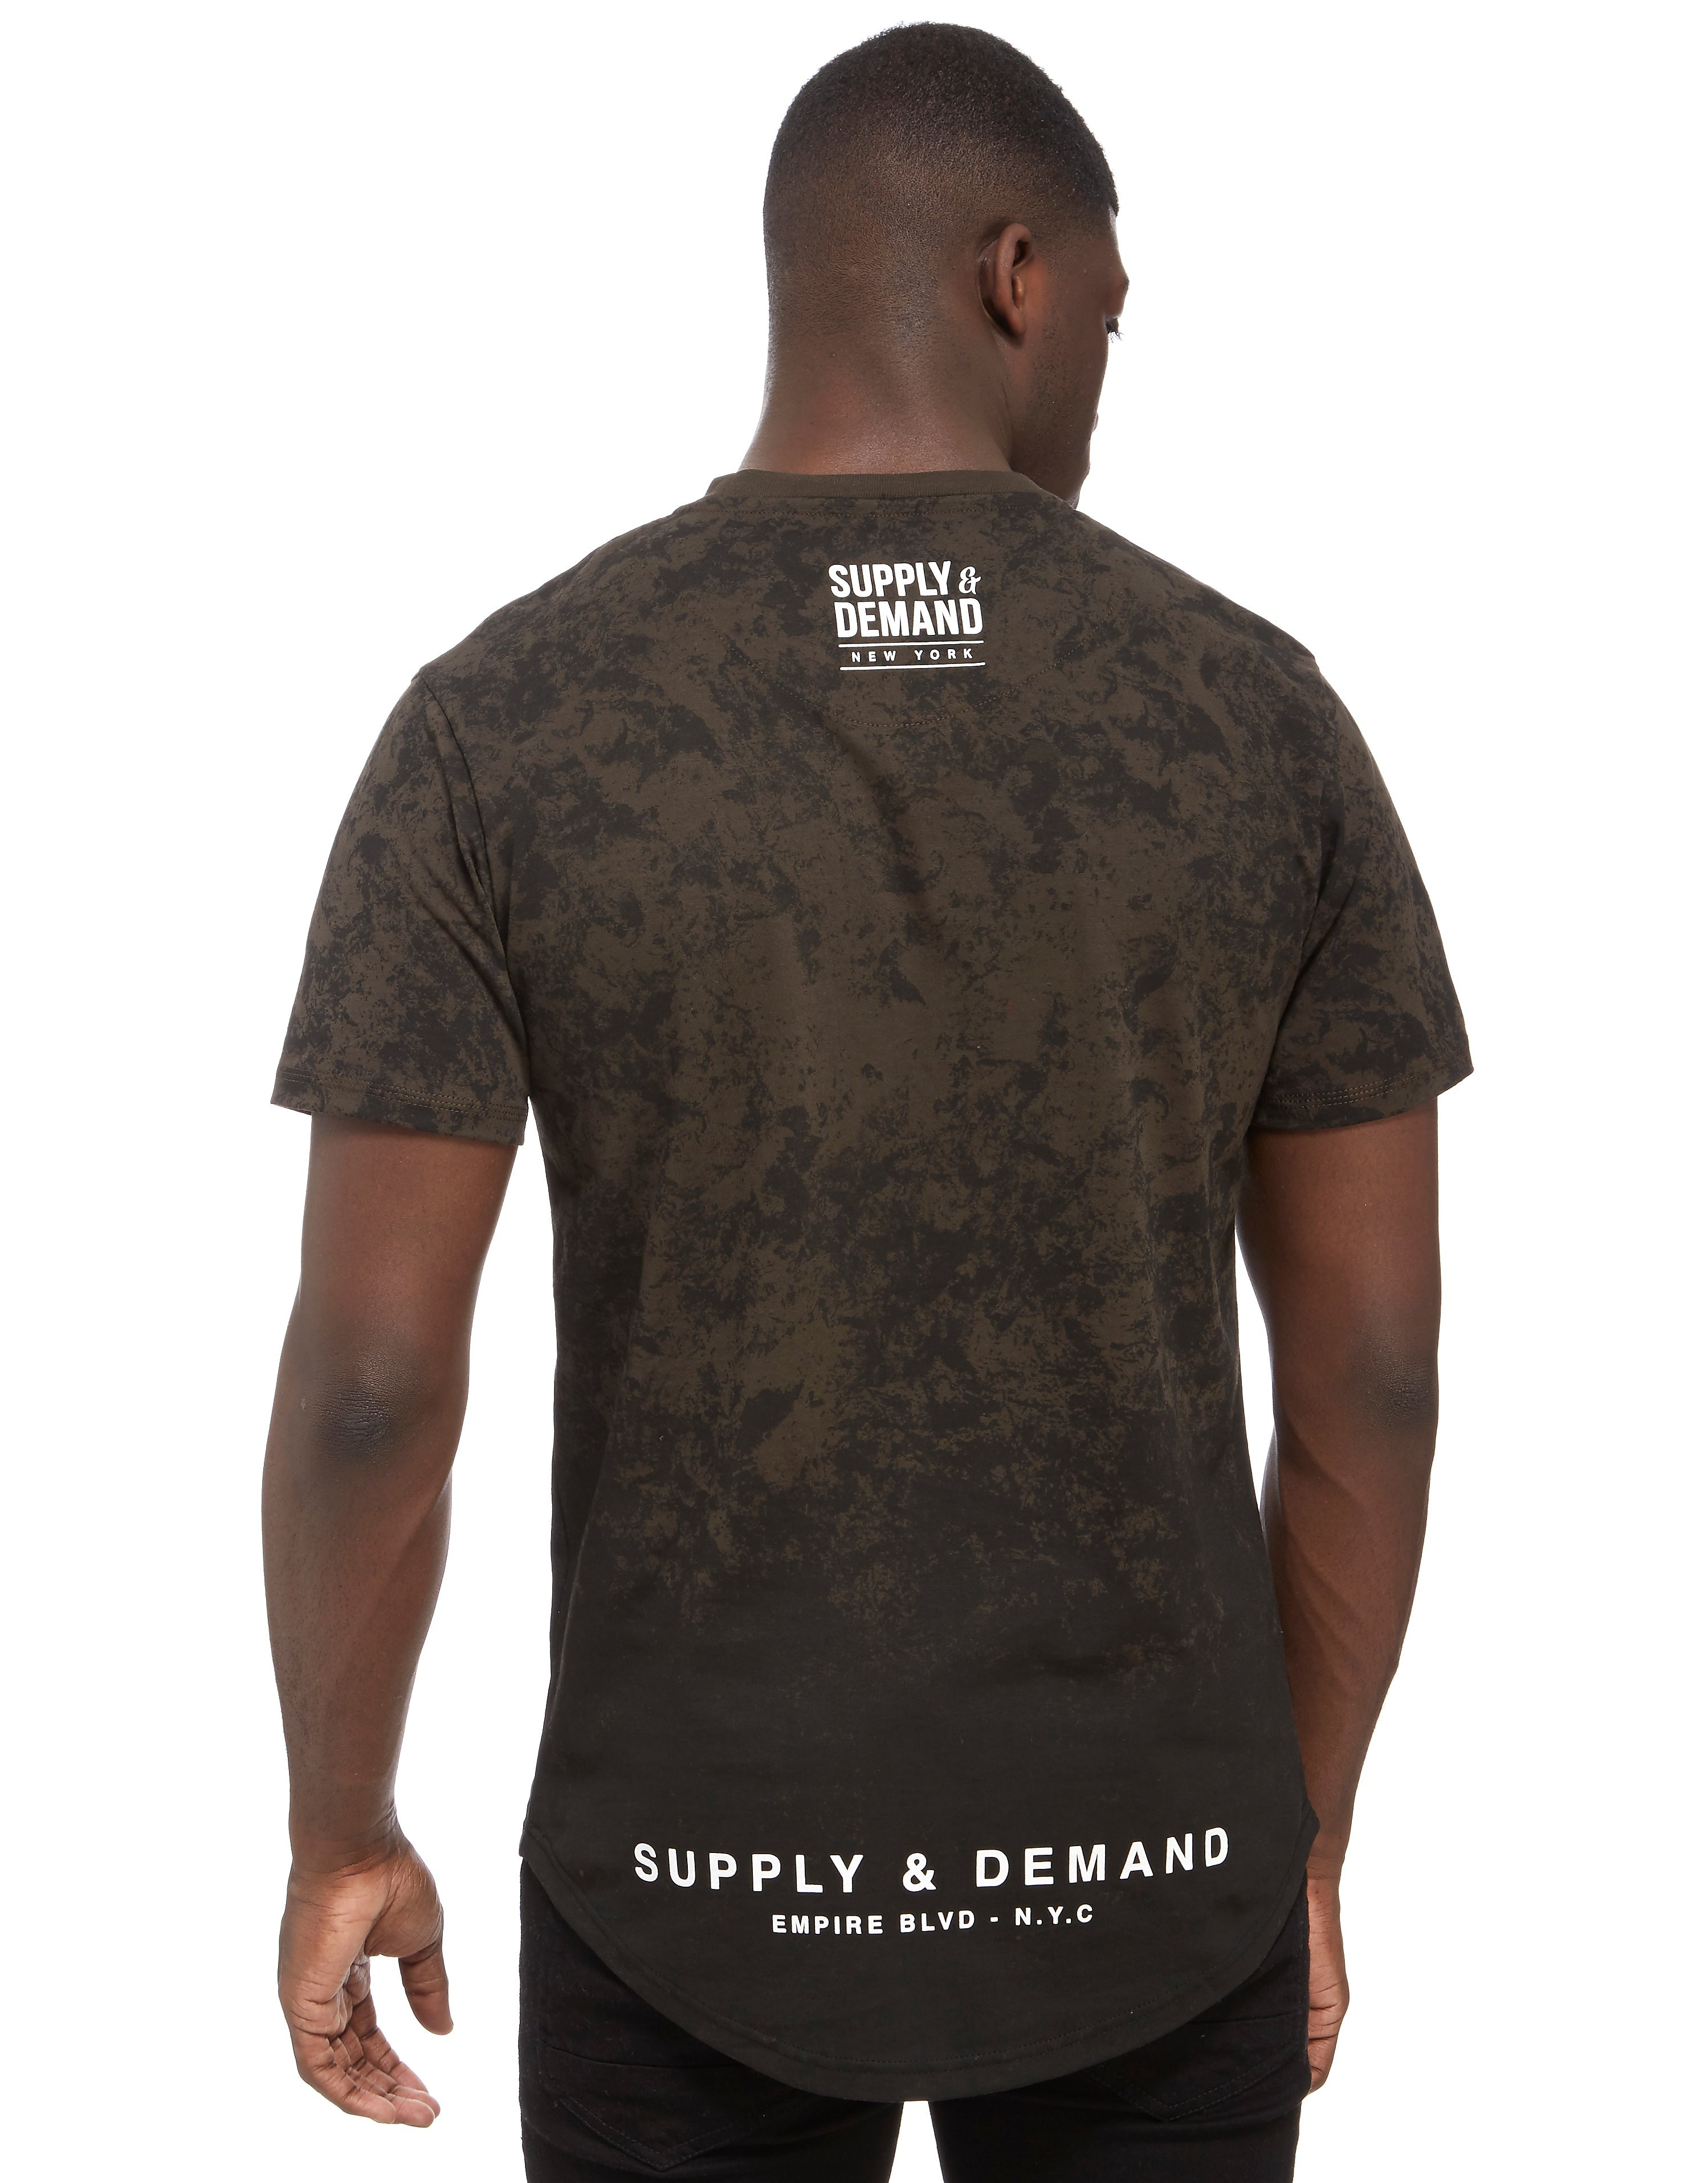 Supply & Demand Grunge T-Shirt Homme